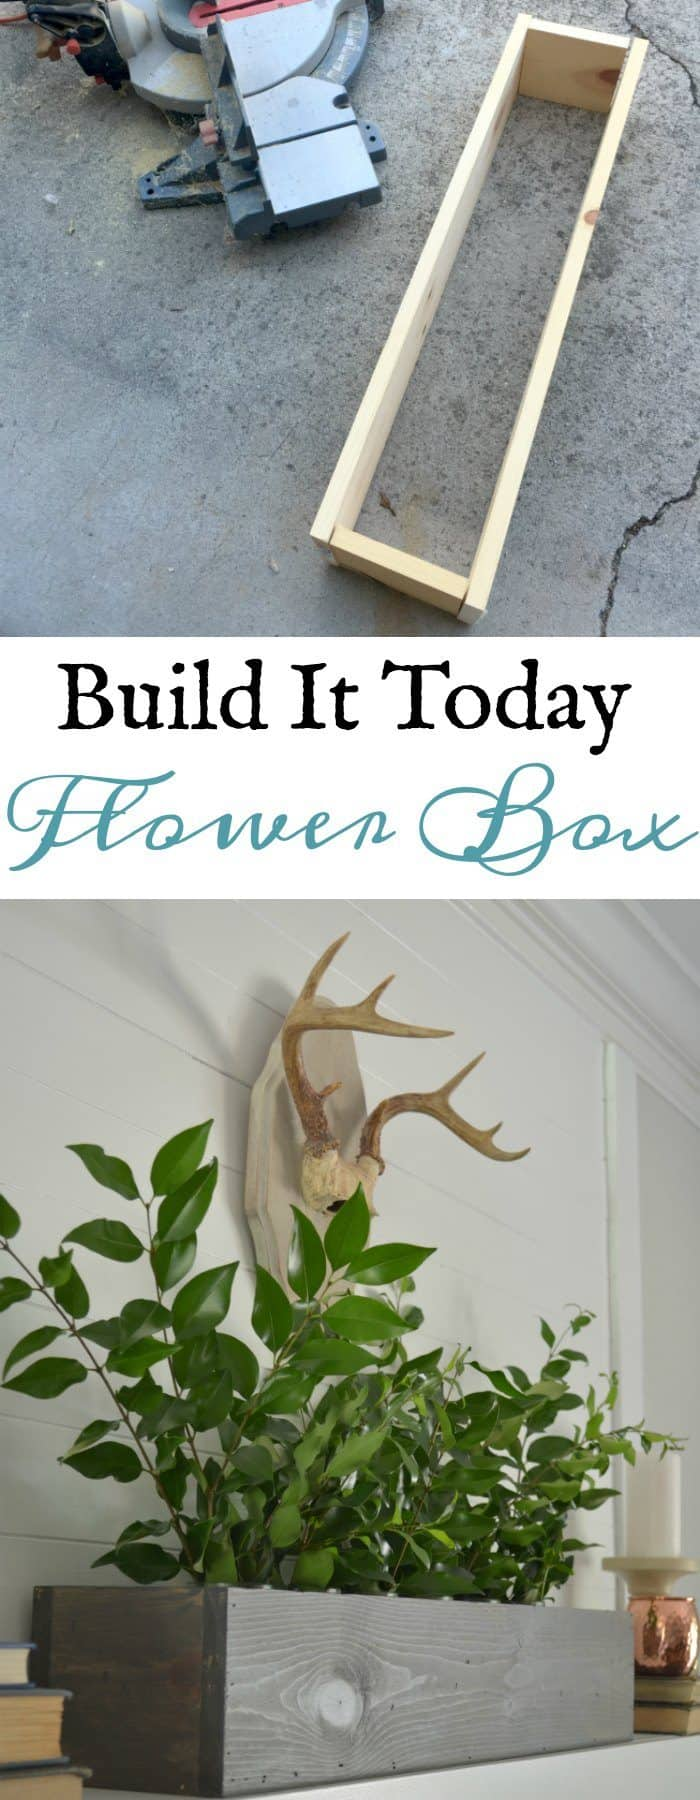 DIY Flower Box out of scrap wood in the garage.